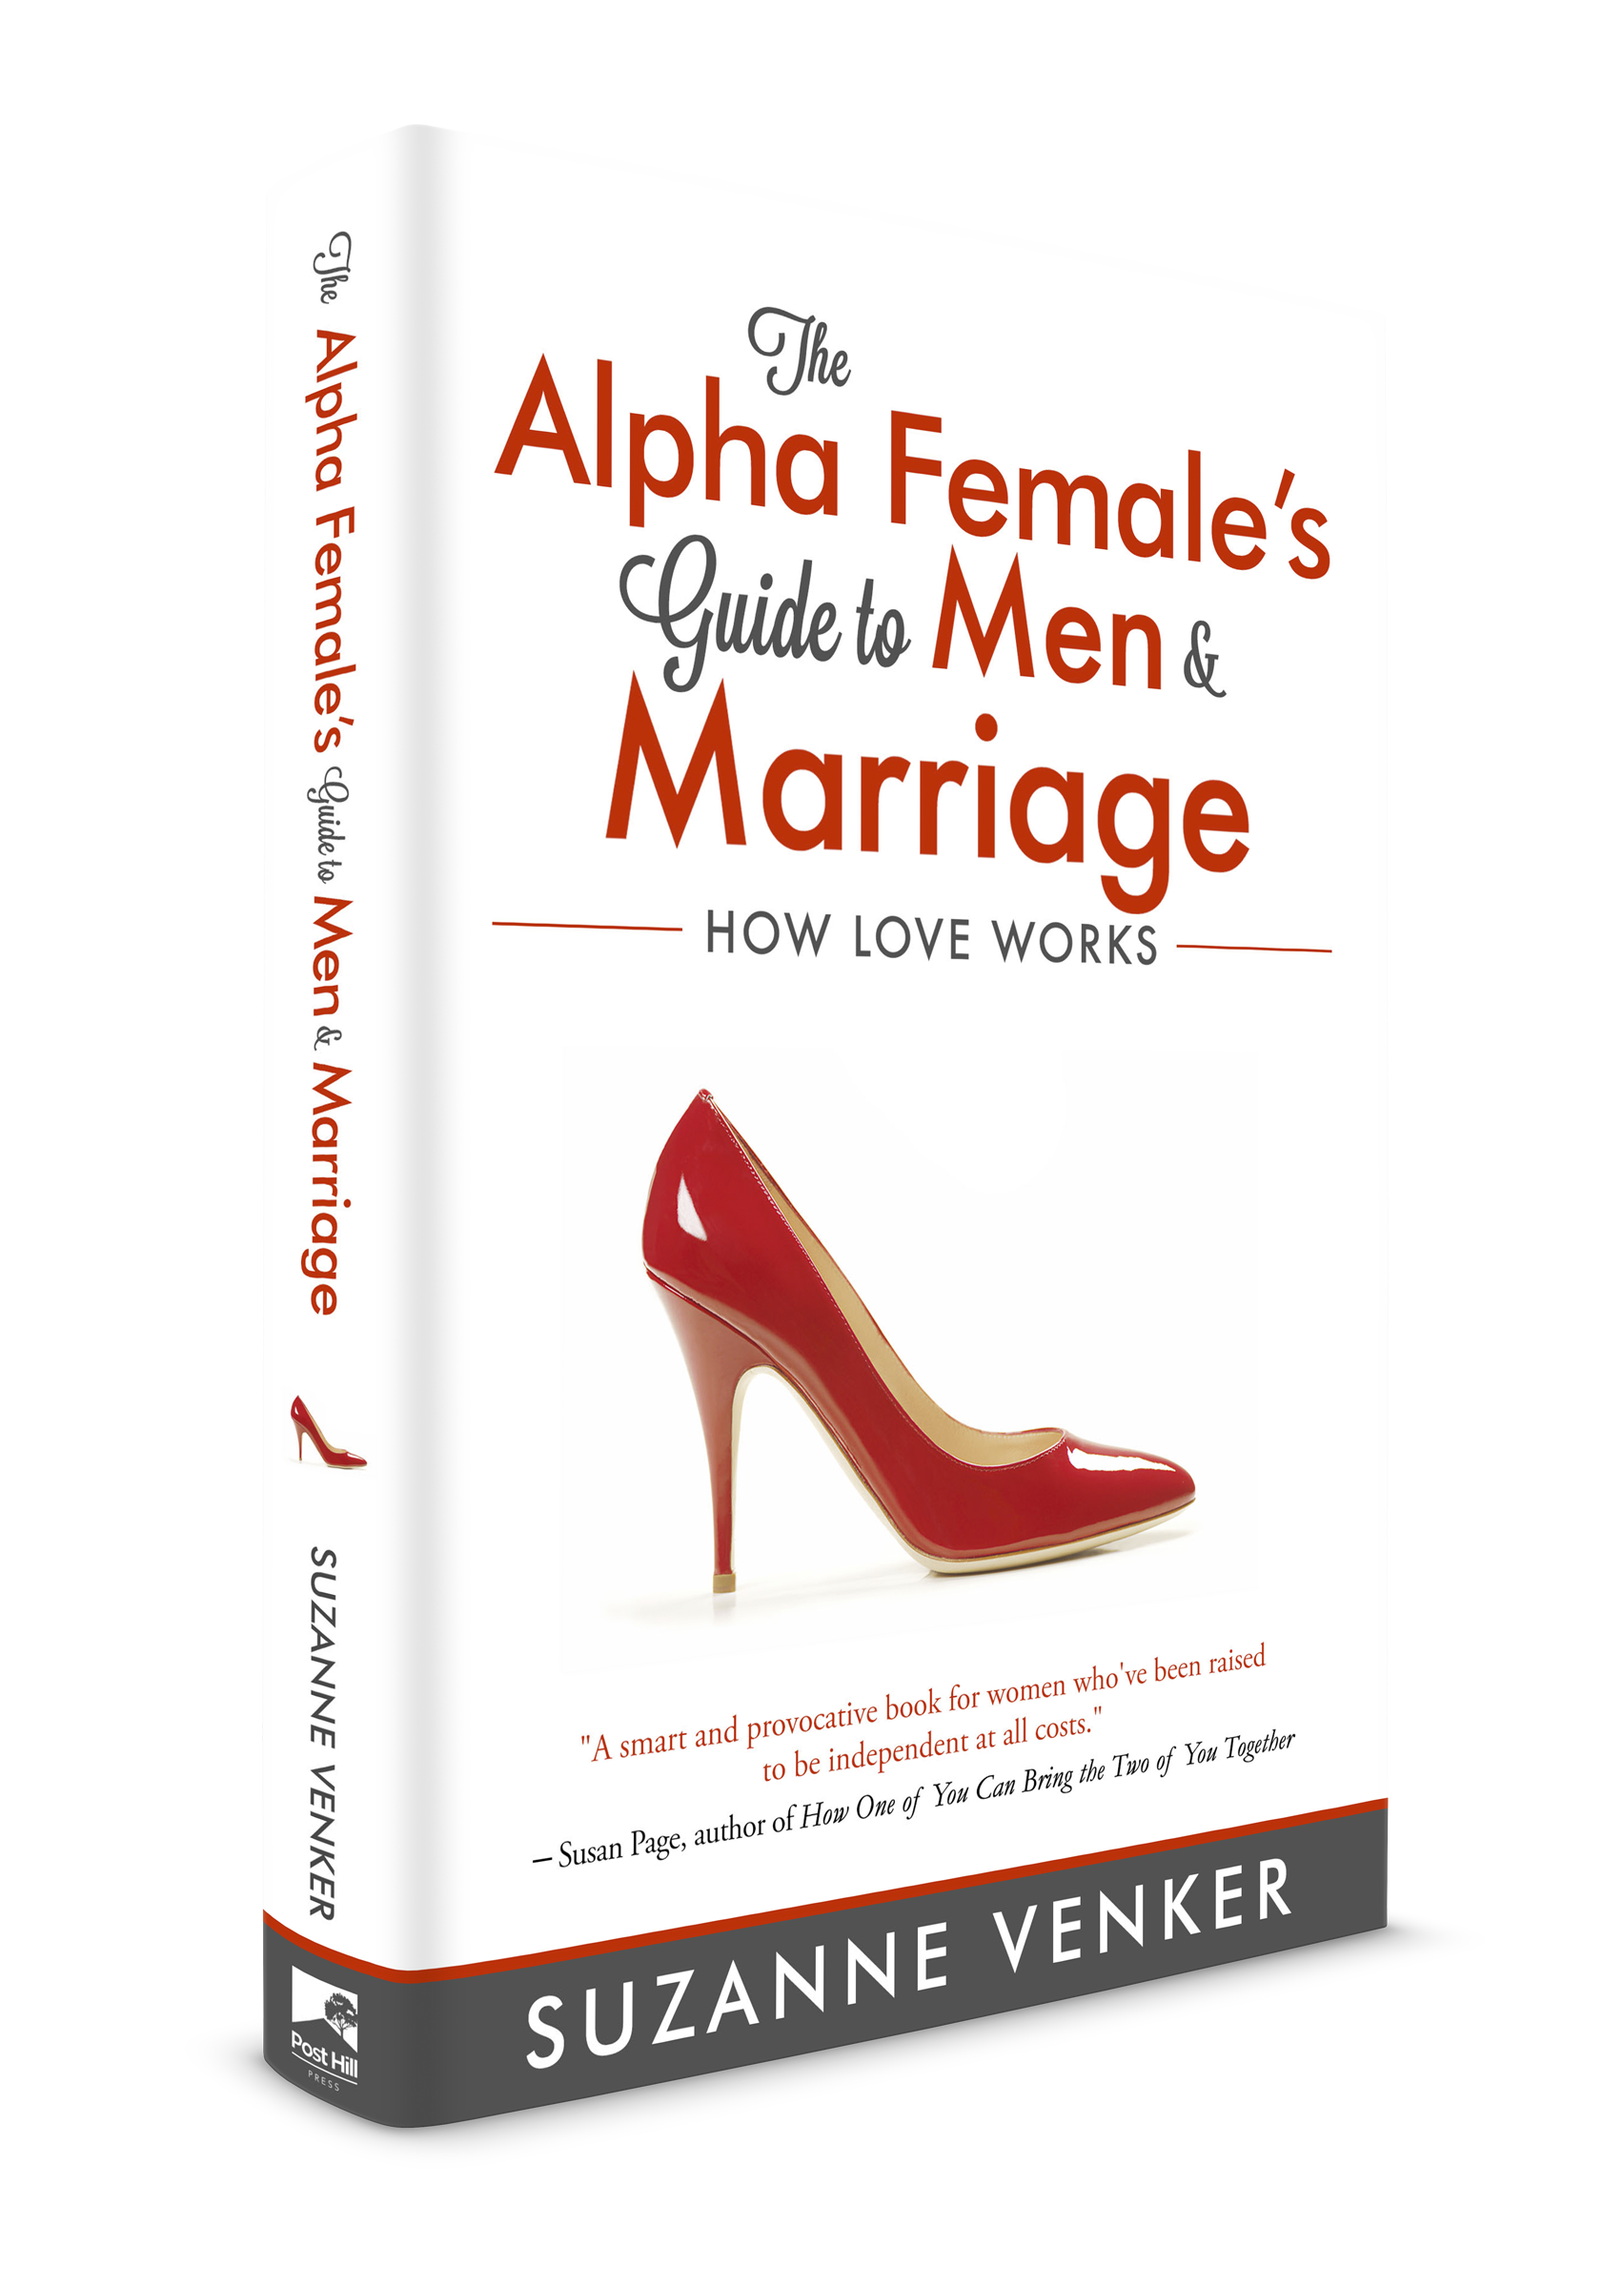 Order The Alpha Female's Guide to Men & Marriage